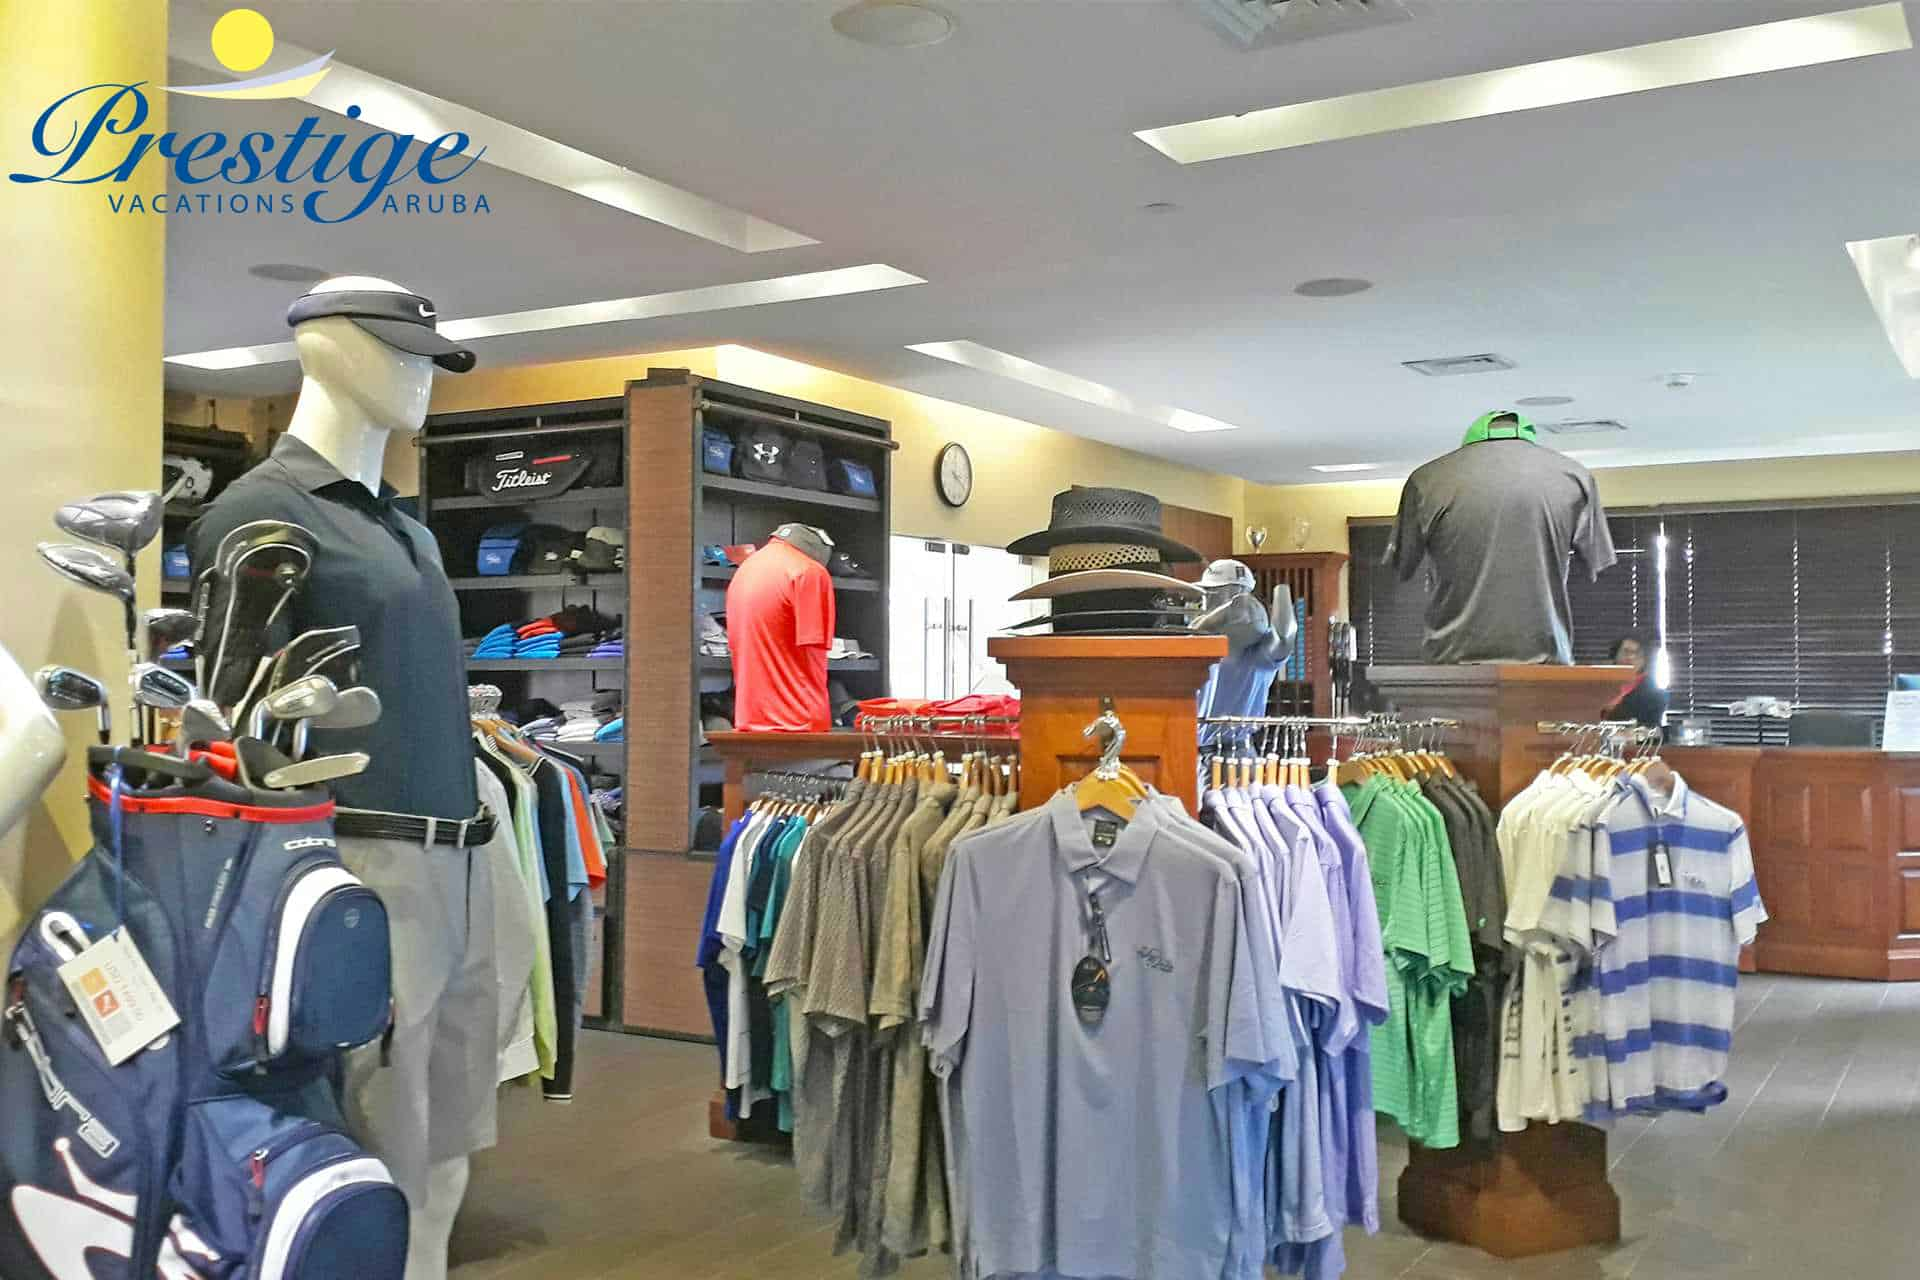 The Divi Golf Pro Shop offers golf equipment & accessories, name-brand apparel for men and women